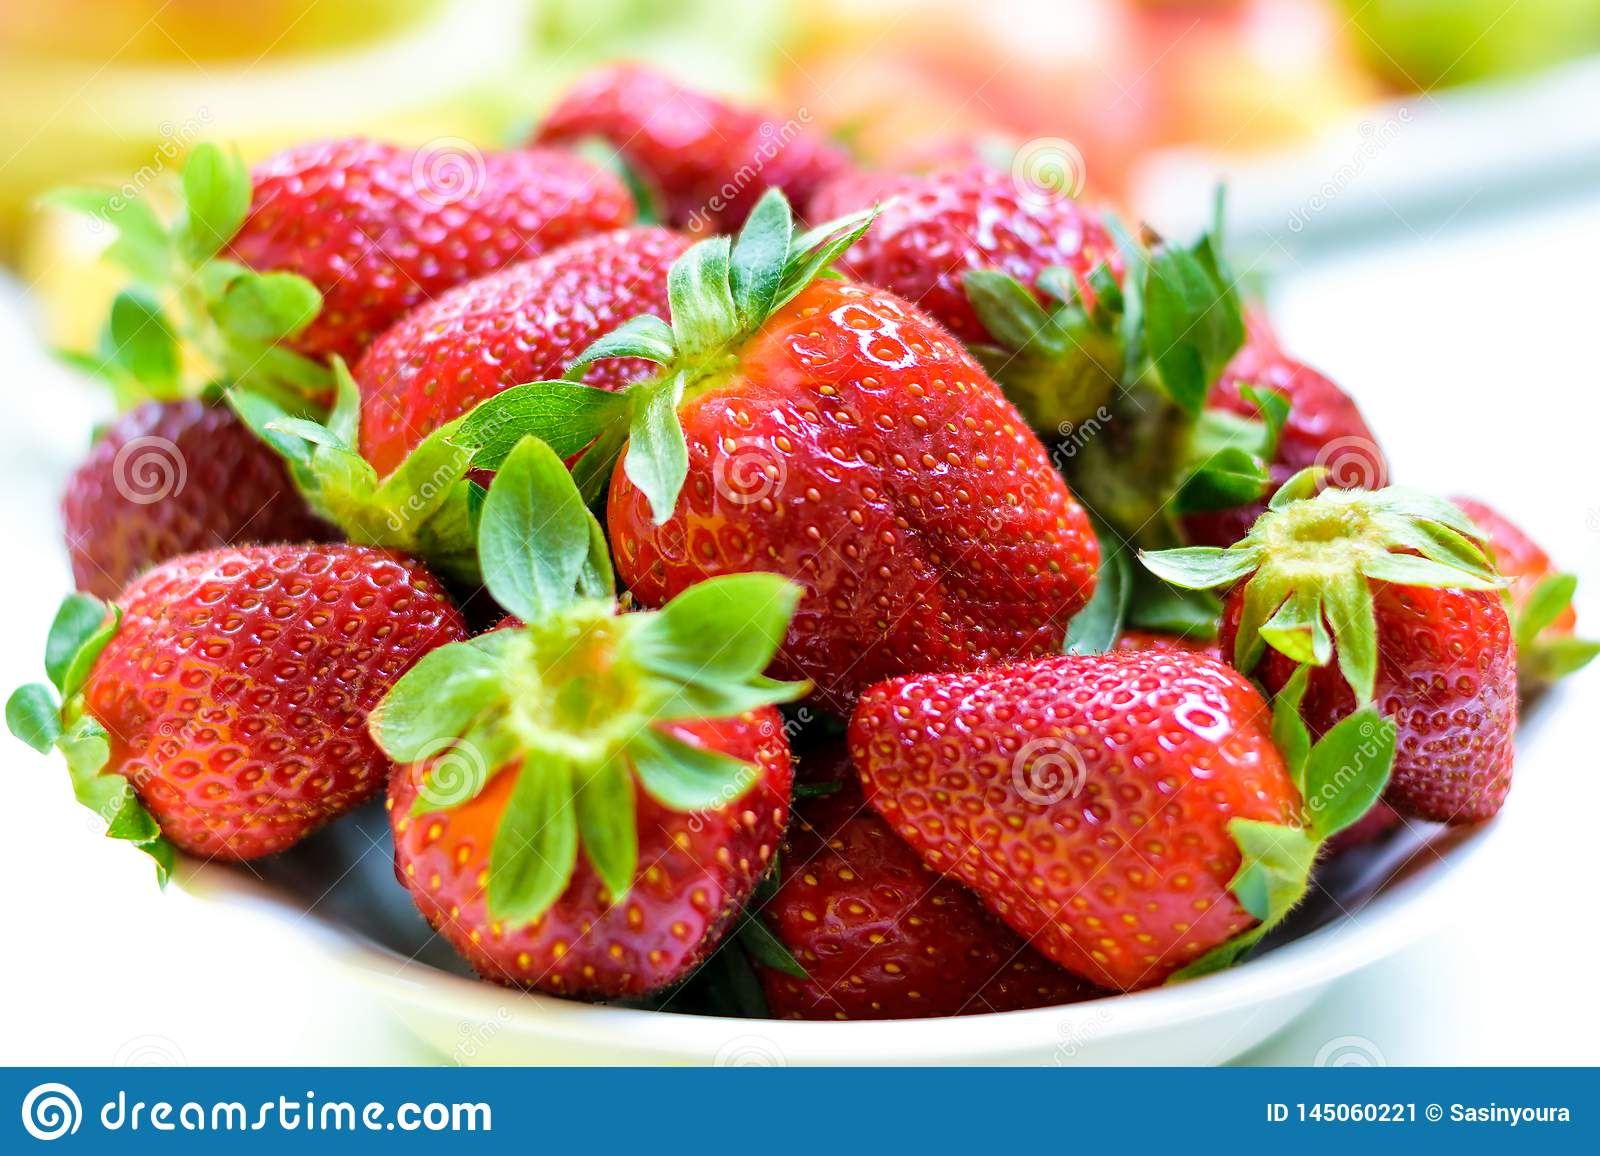 Beautiful red strawberry. Heap of fresh strawberries in ceramic bowl on a rustic white background on the table.